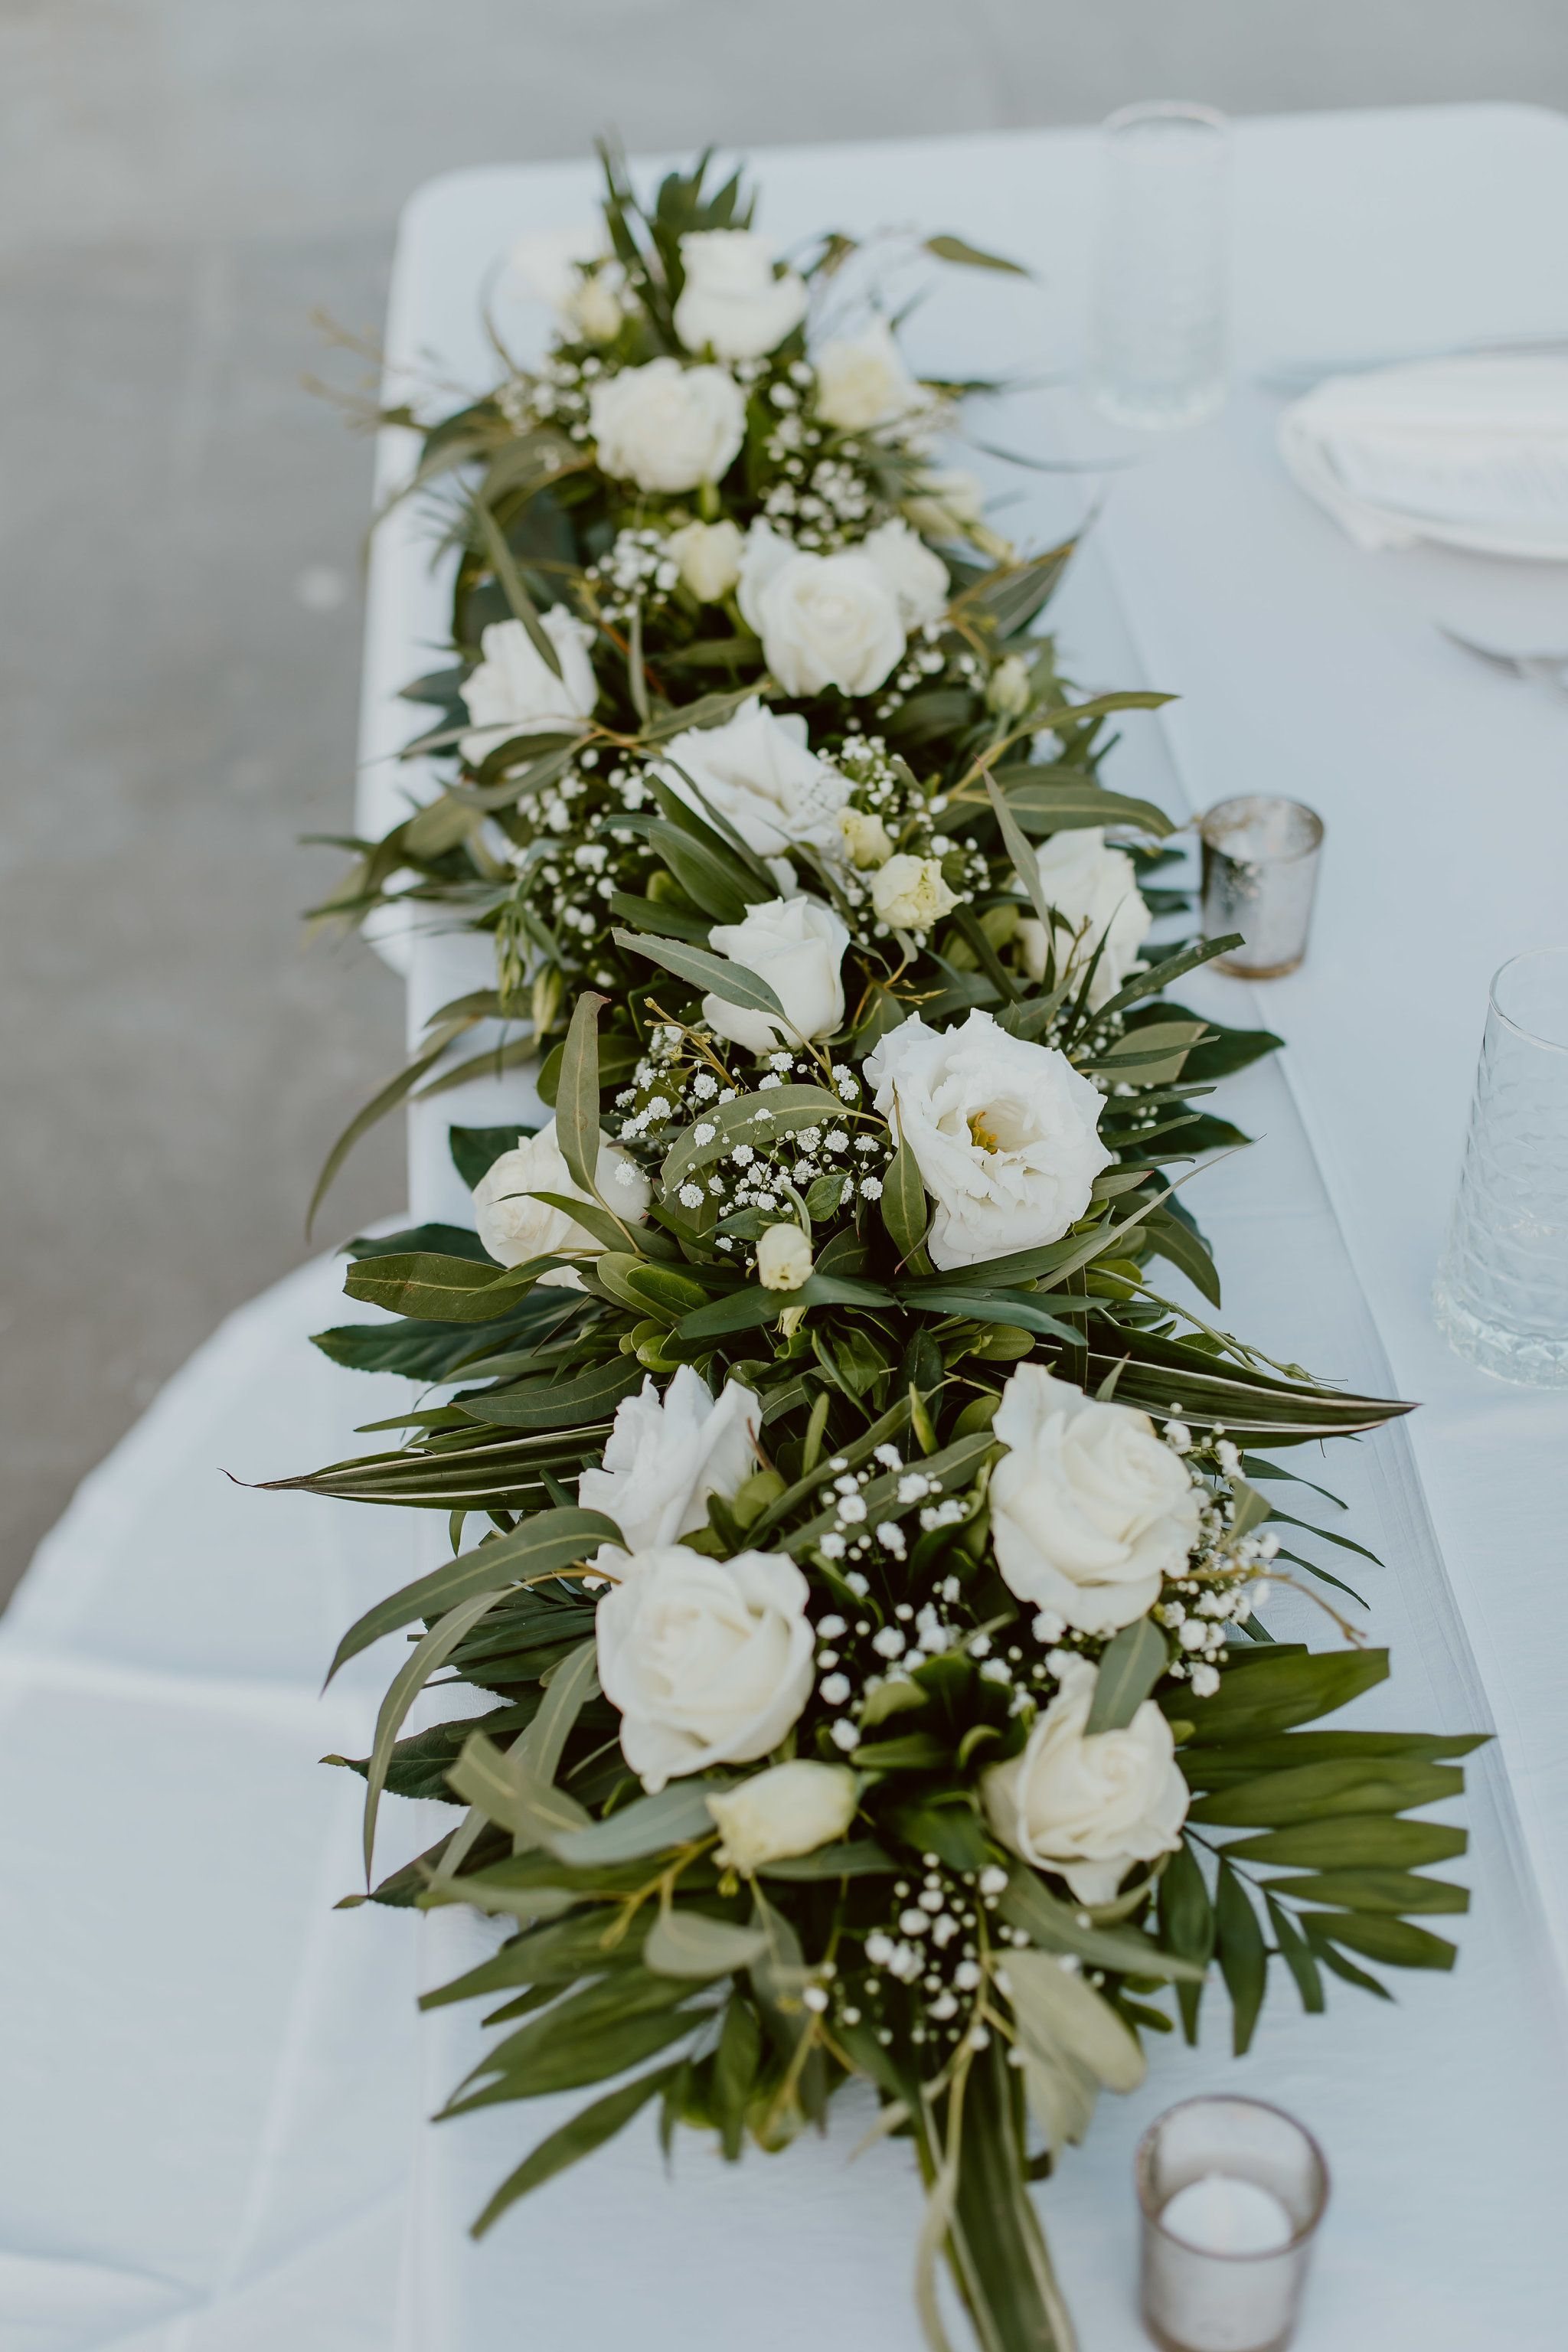 Table Centerpieces with greenery with White Flowers on Sweetheart Table at The Cape in Los Cabos Mexico